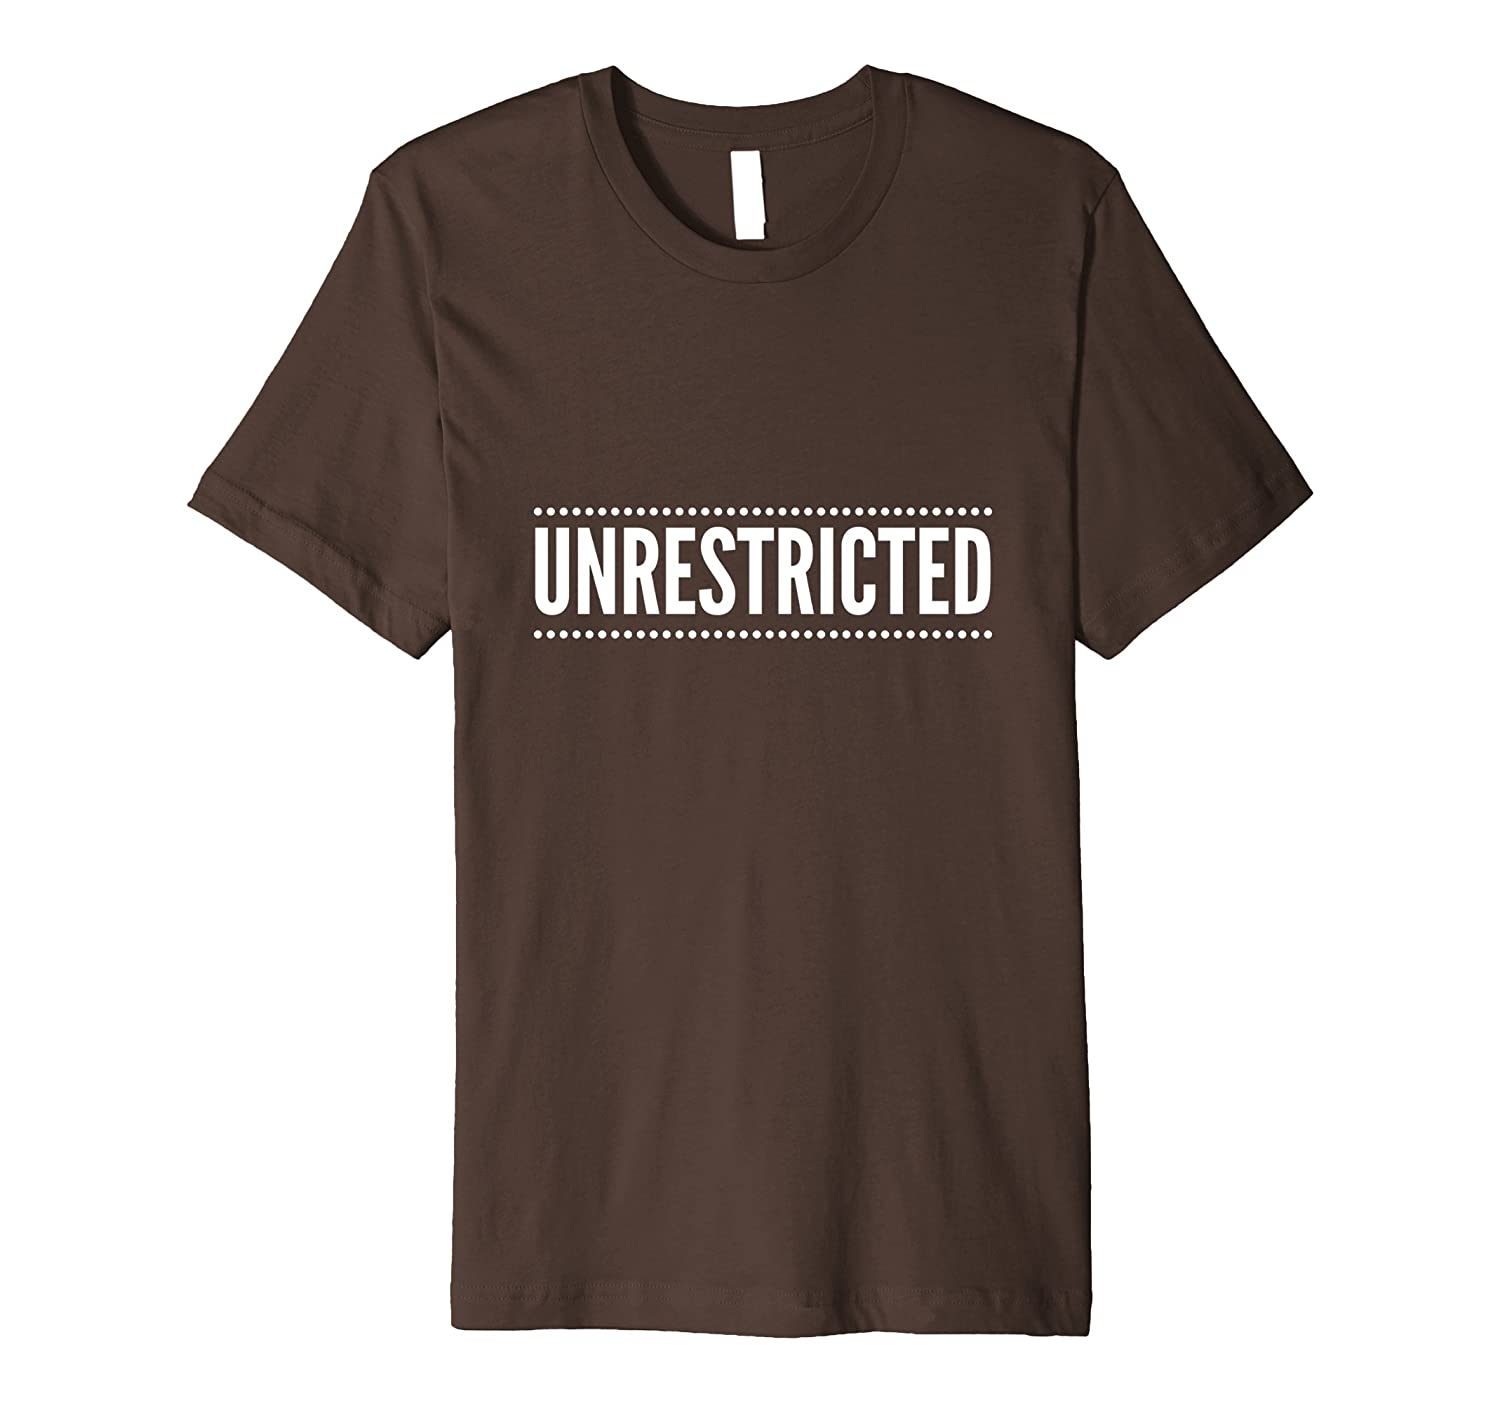 69 Unrestricted Shirt Totally Sweet and Sexy-TJ